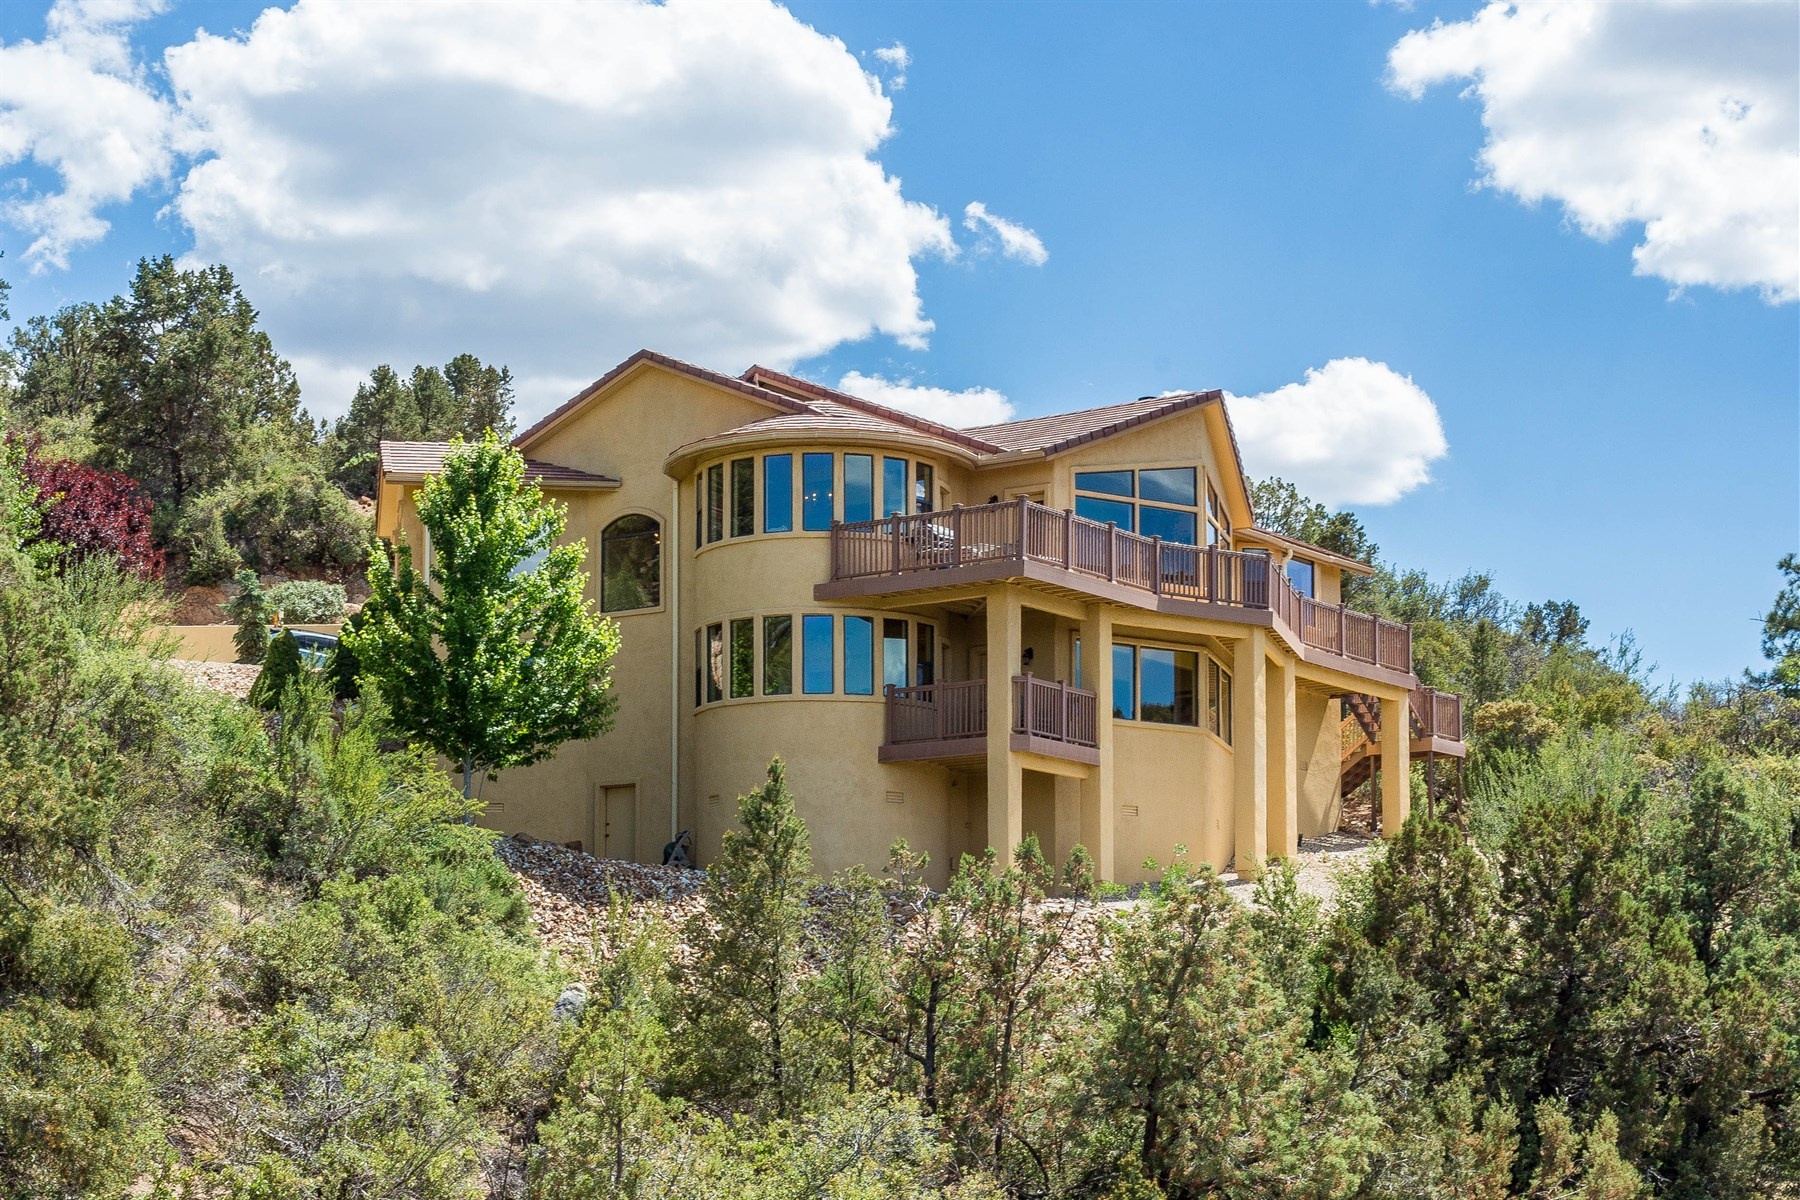 Moradia para Venda às Lovely custom home close to downtown 1298 S Manzanita Hill Road Prescott, Arizona, 86303 Estados Unidos